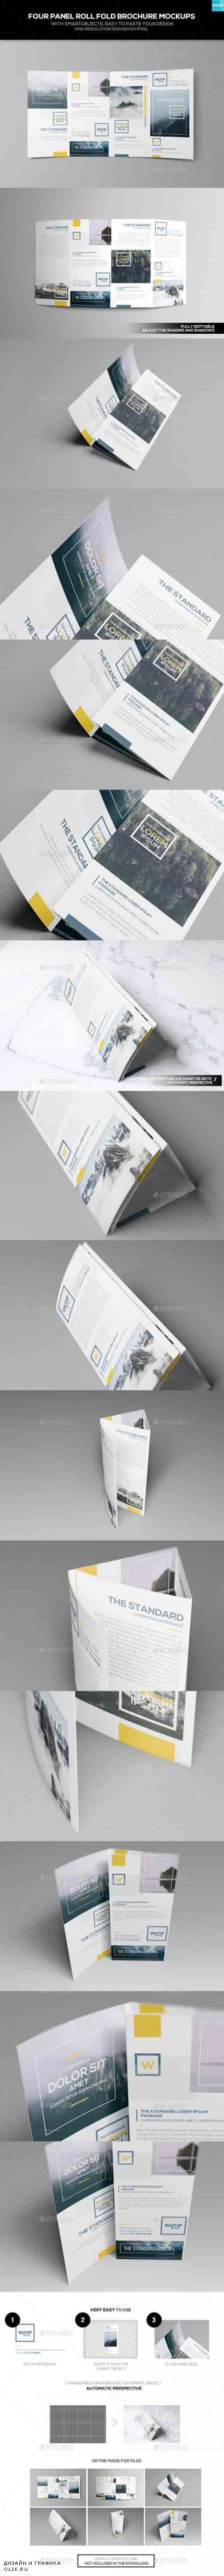 Four Panel Roll Fold Brochure Mockups 17374690